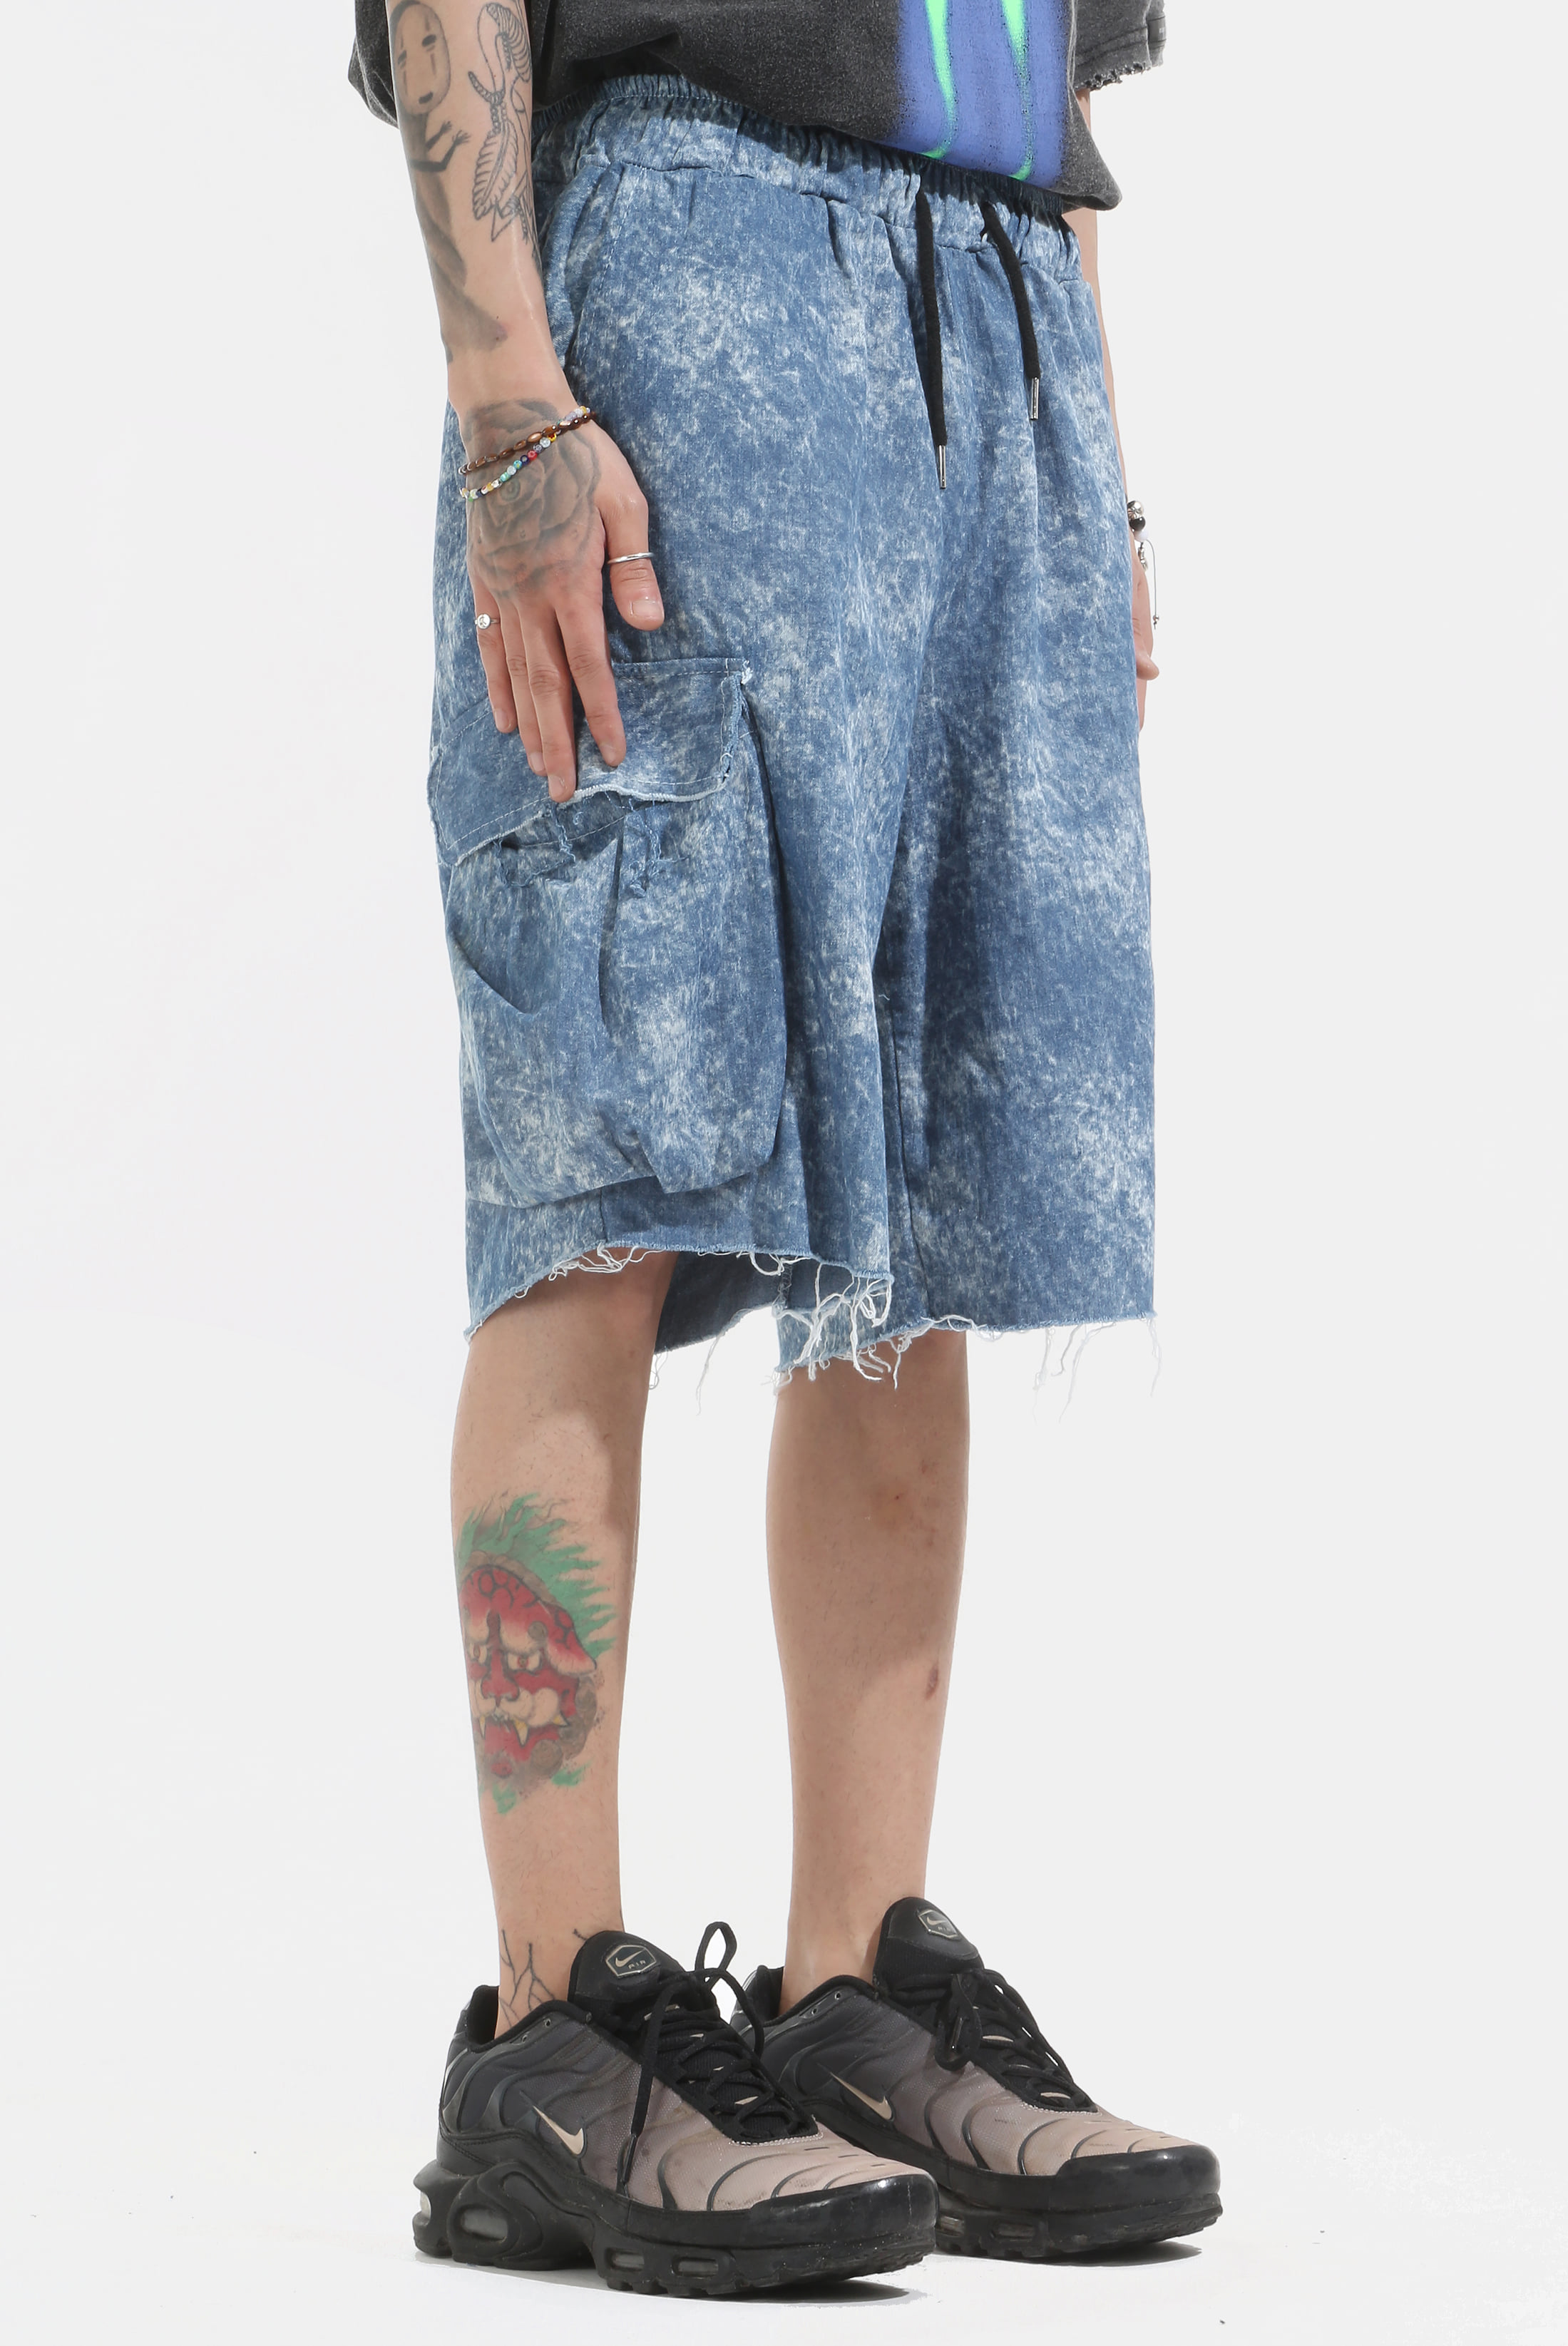 Blue Tye-Dye Demage Half_Pants